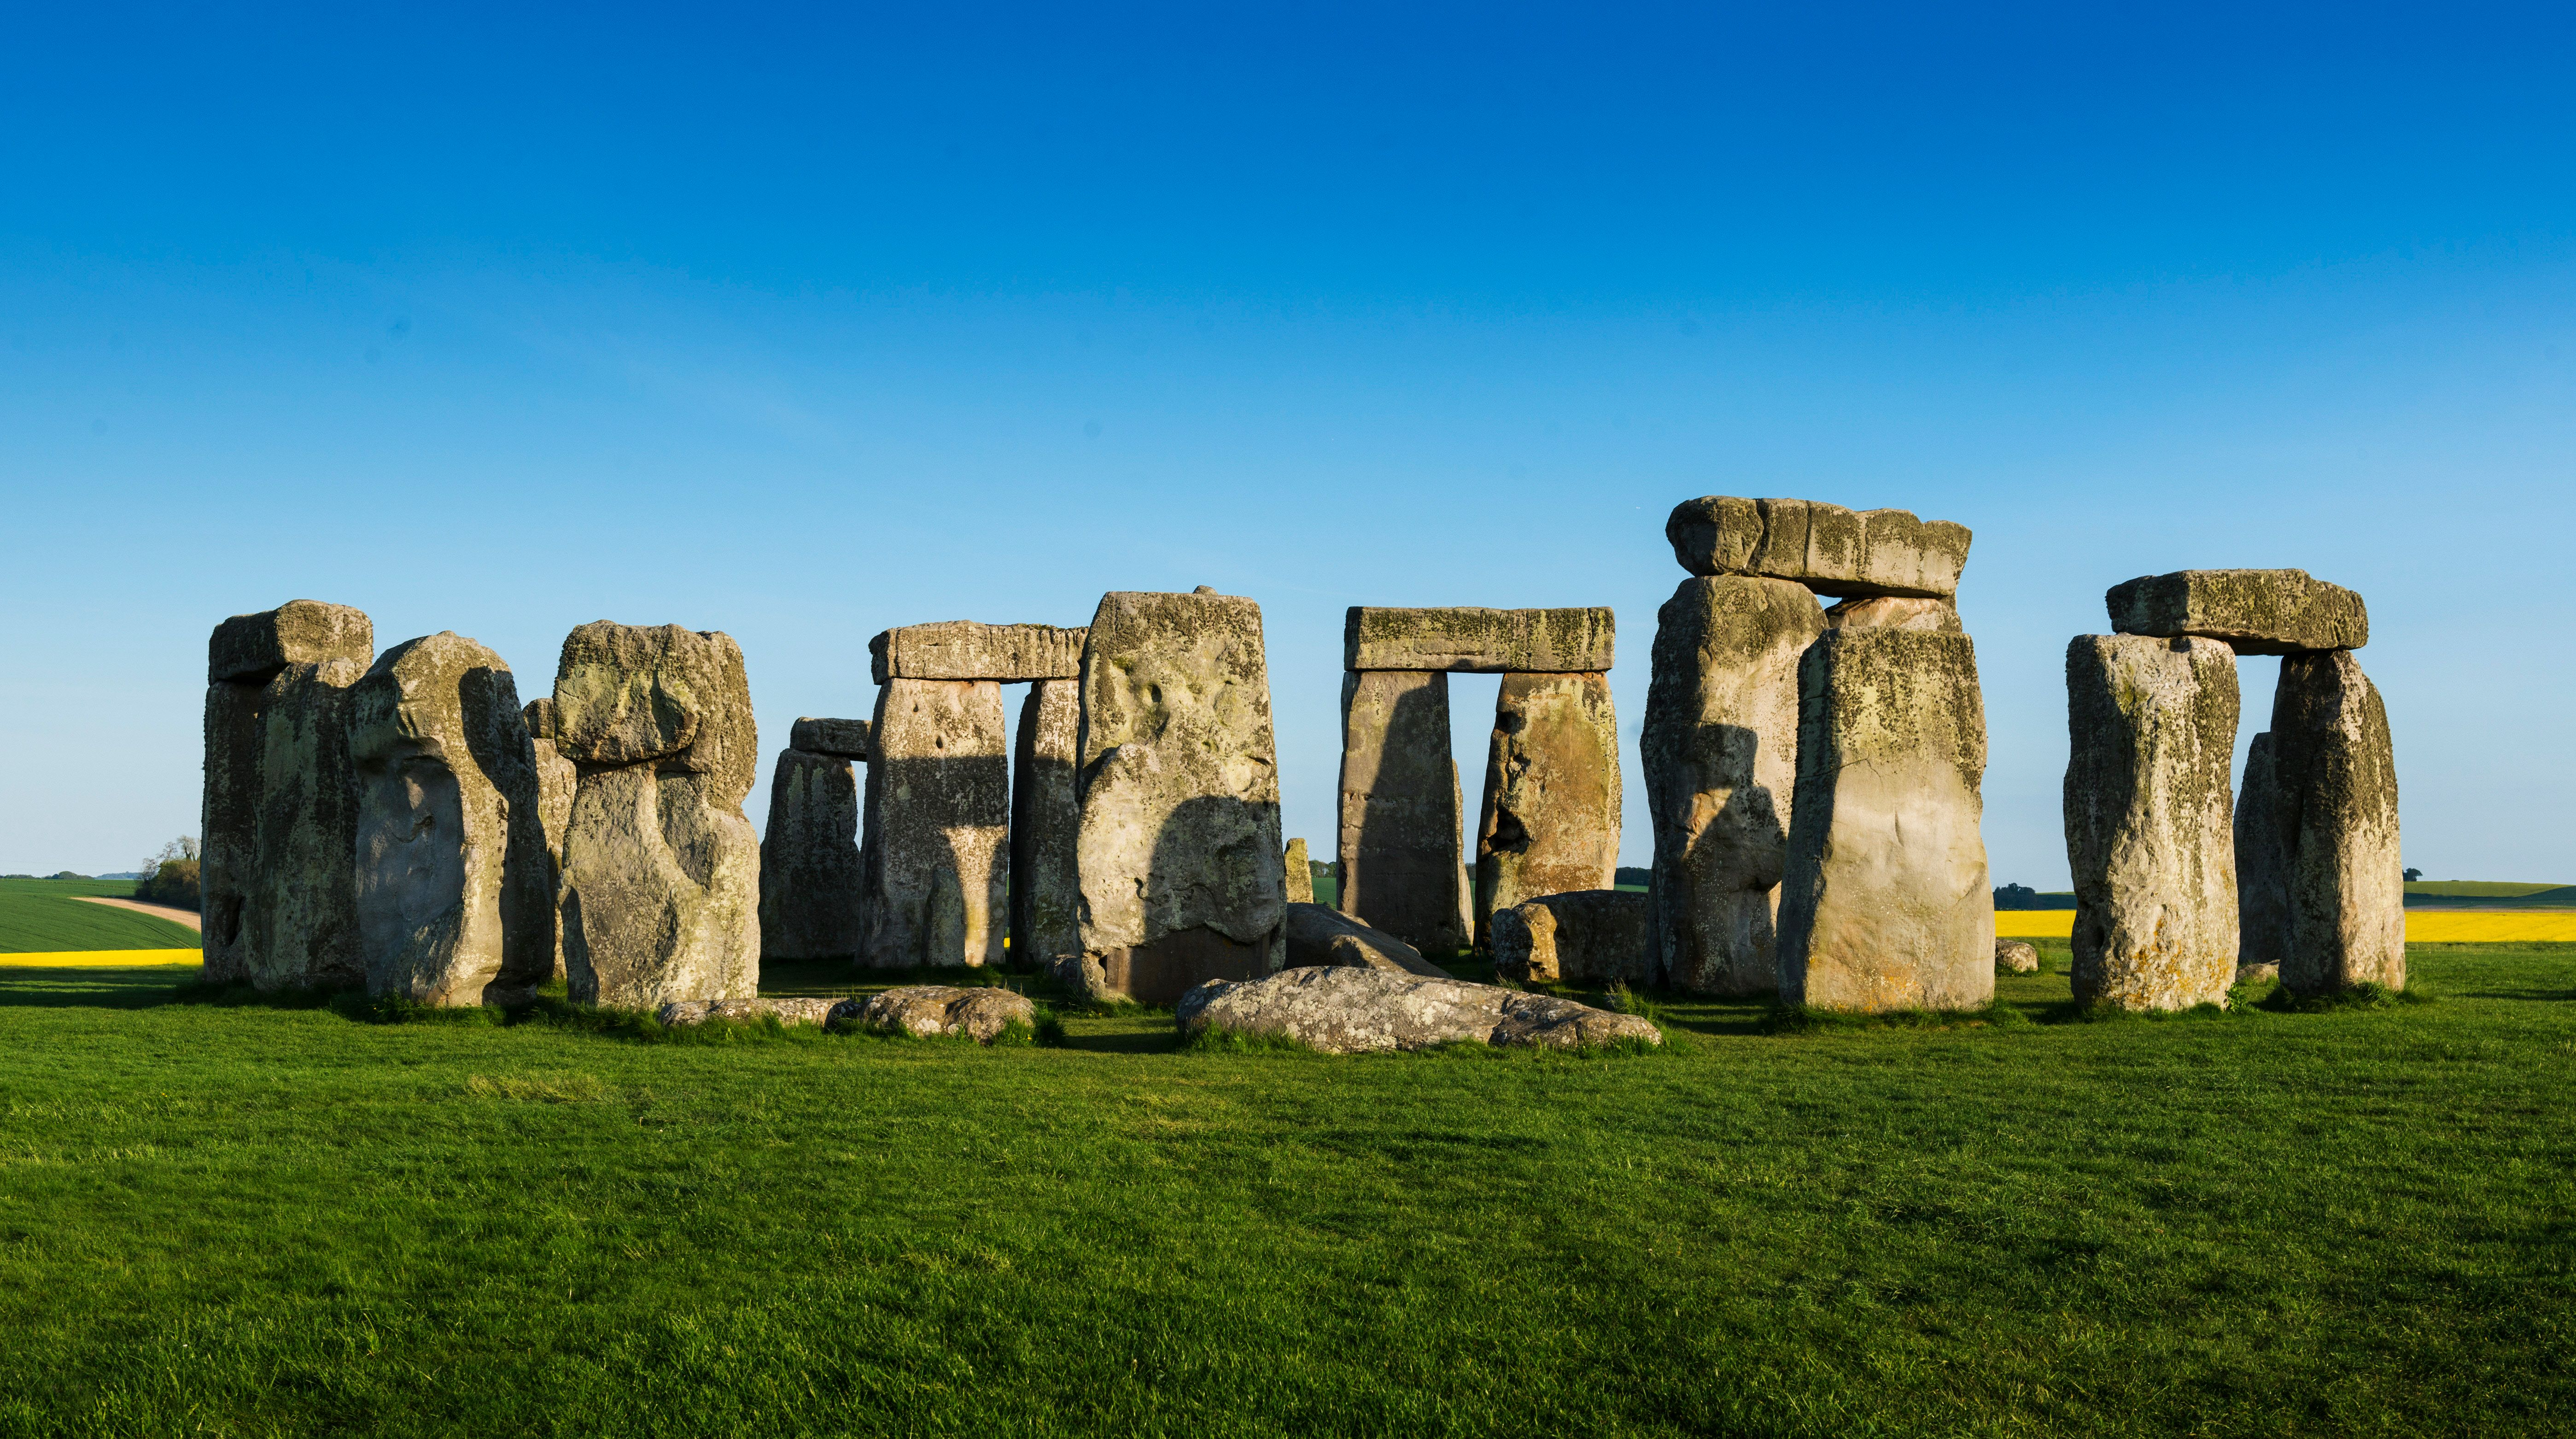 Stonehenge Road Tunnel Plans Leave Historians Furious Over 'Brutal